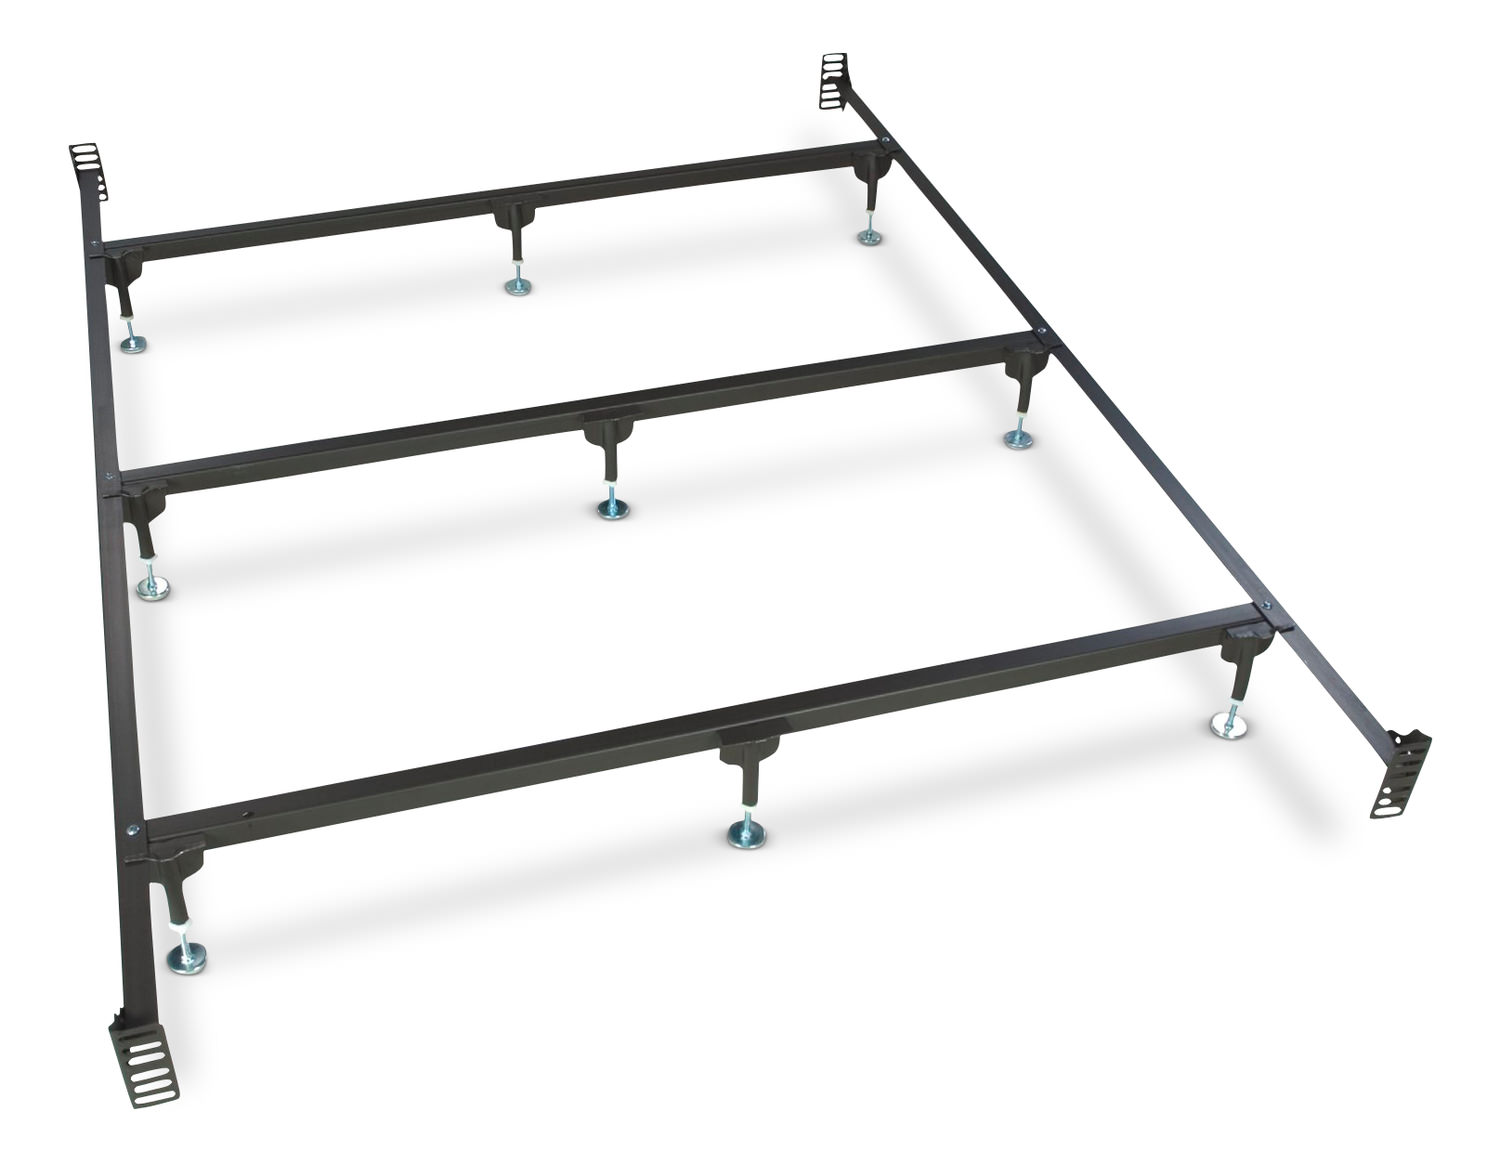 metal headboardfootboard bed frame queen size - Bed Frame For Headboard And Footboard